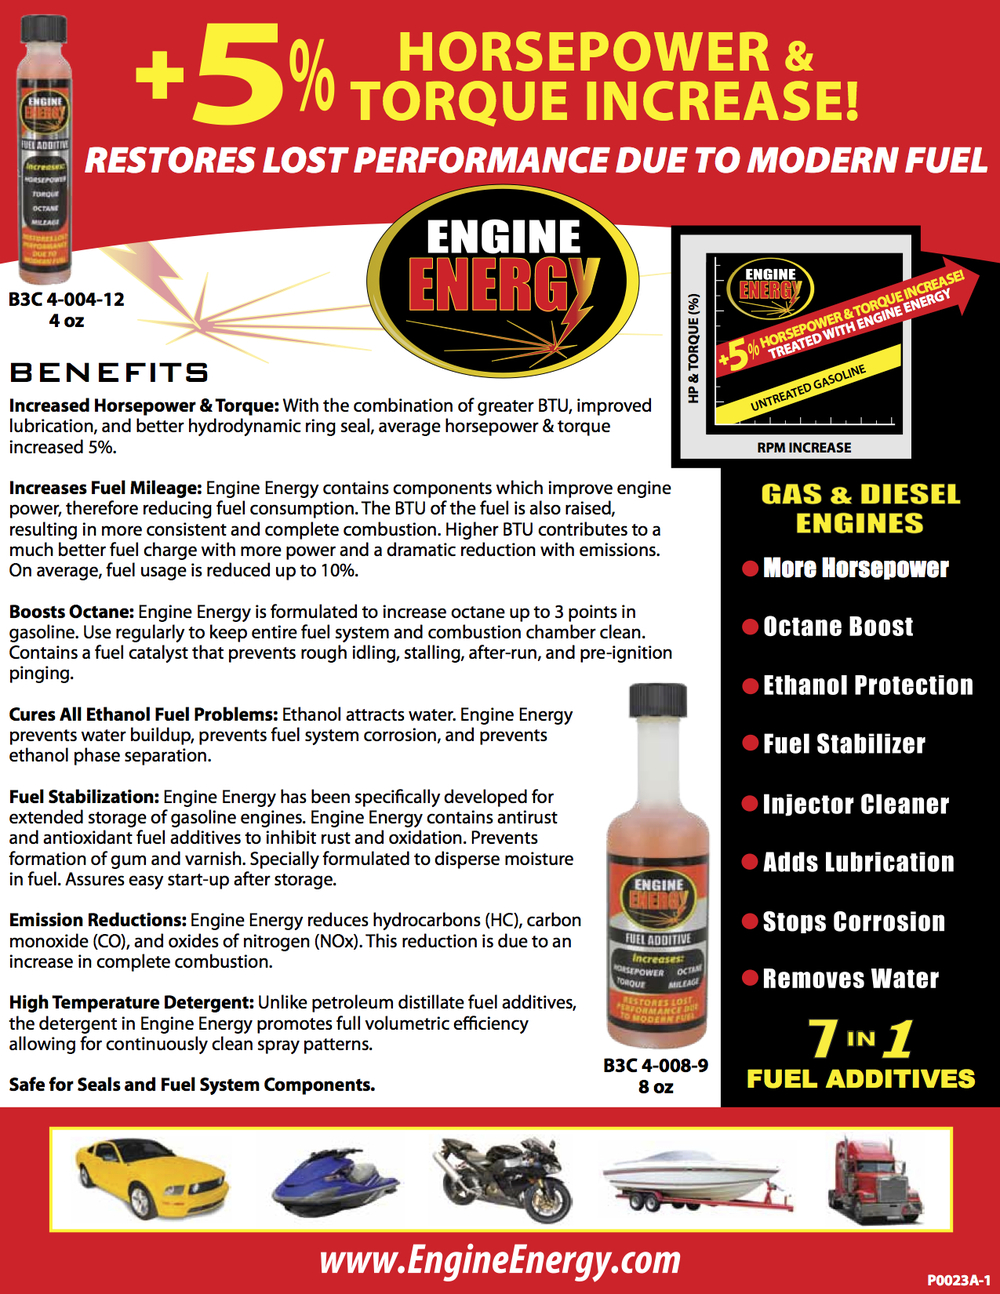 Engine Energy Sell Sheetb 01.21.13.jpg